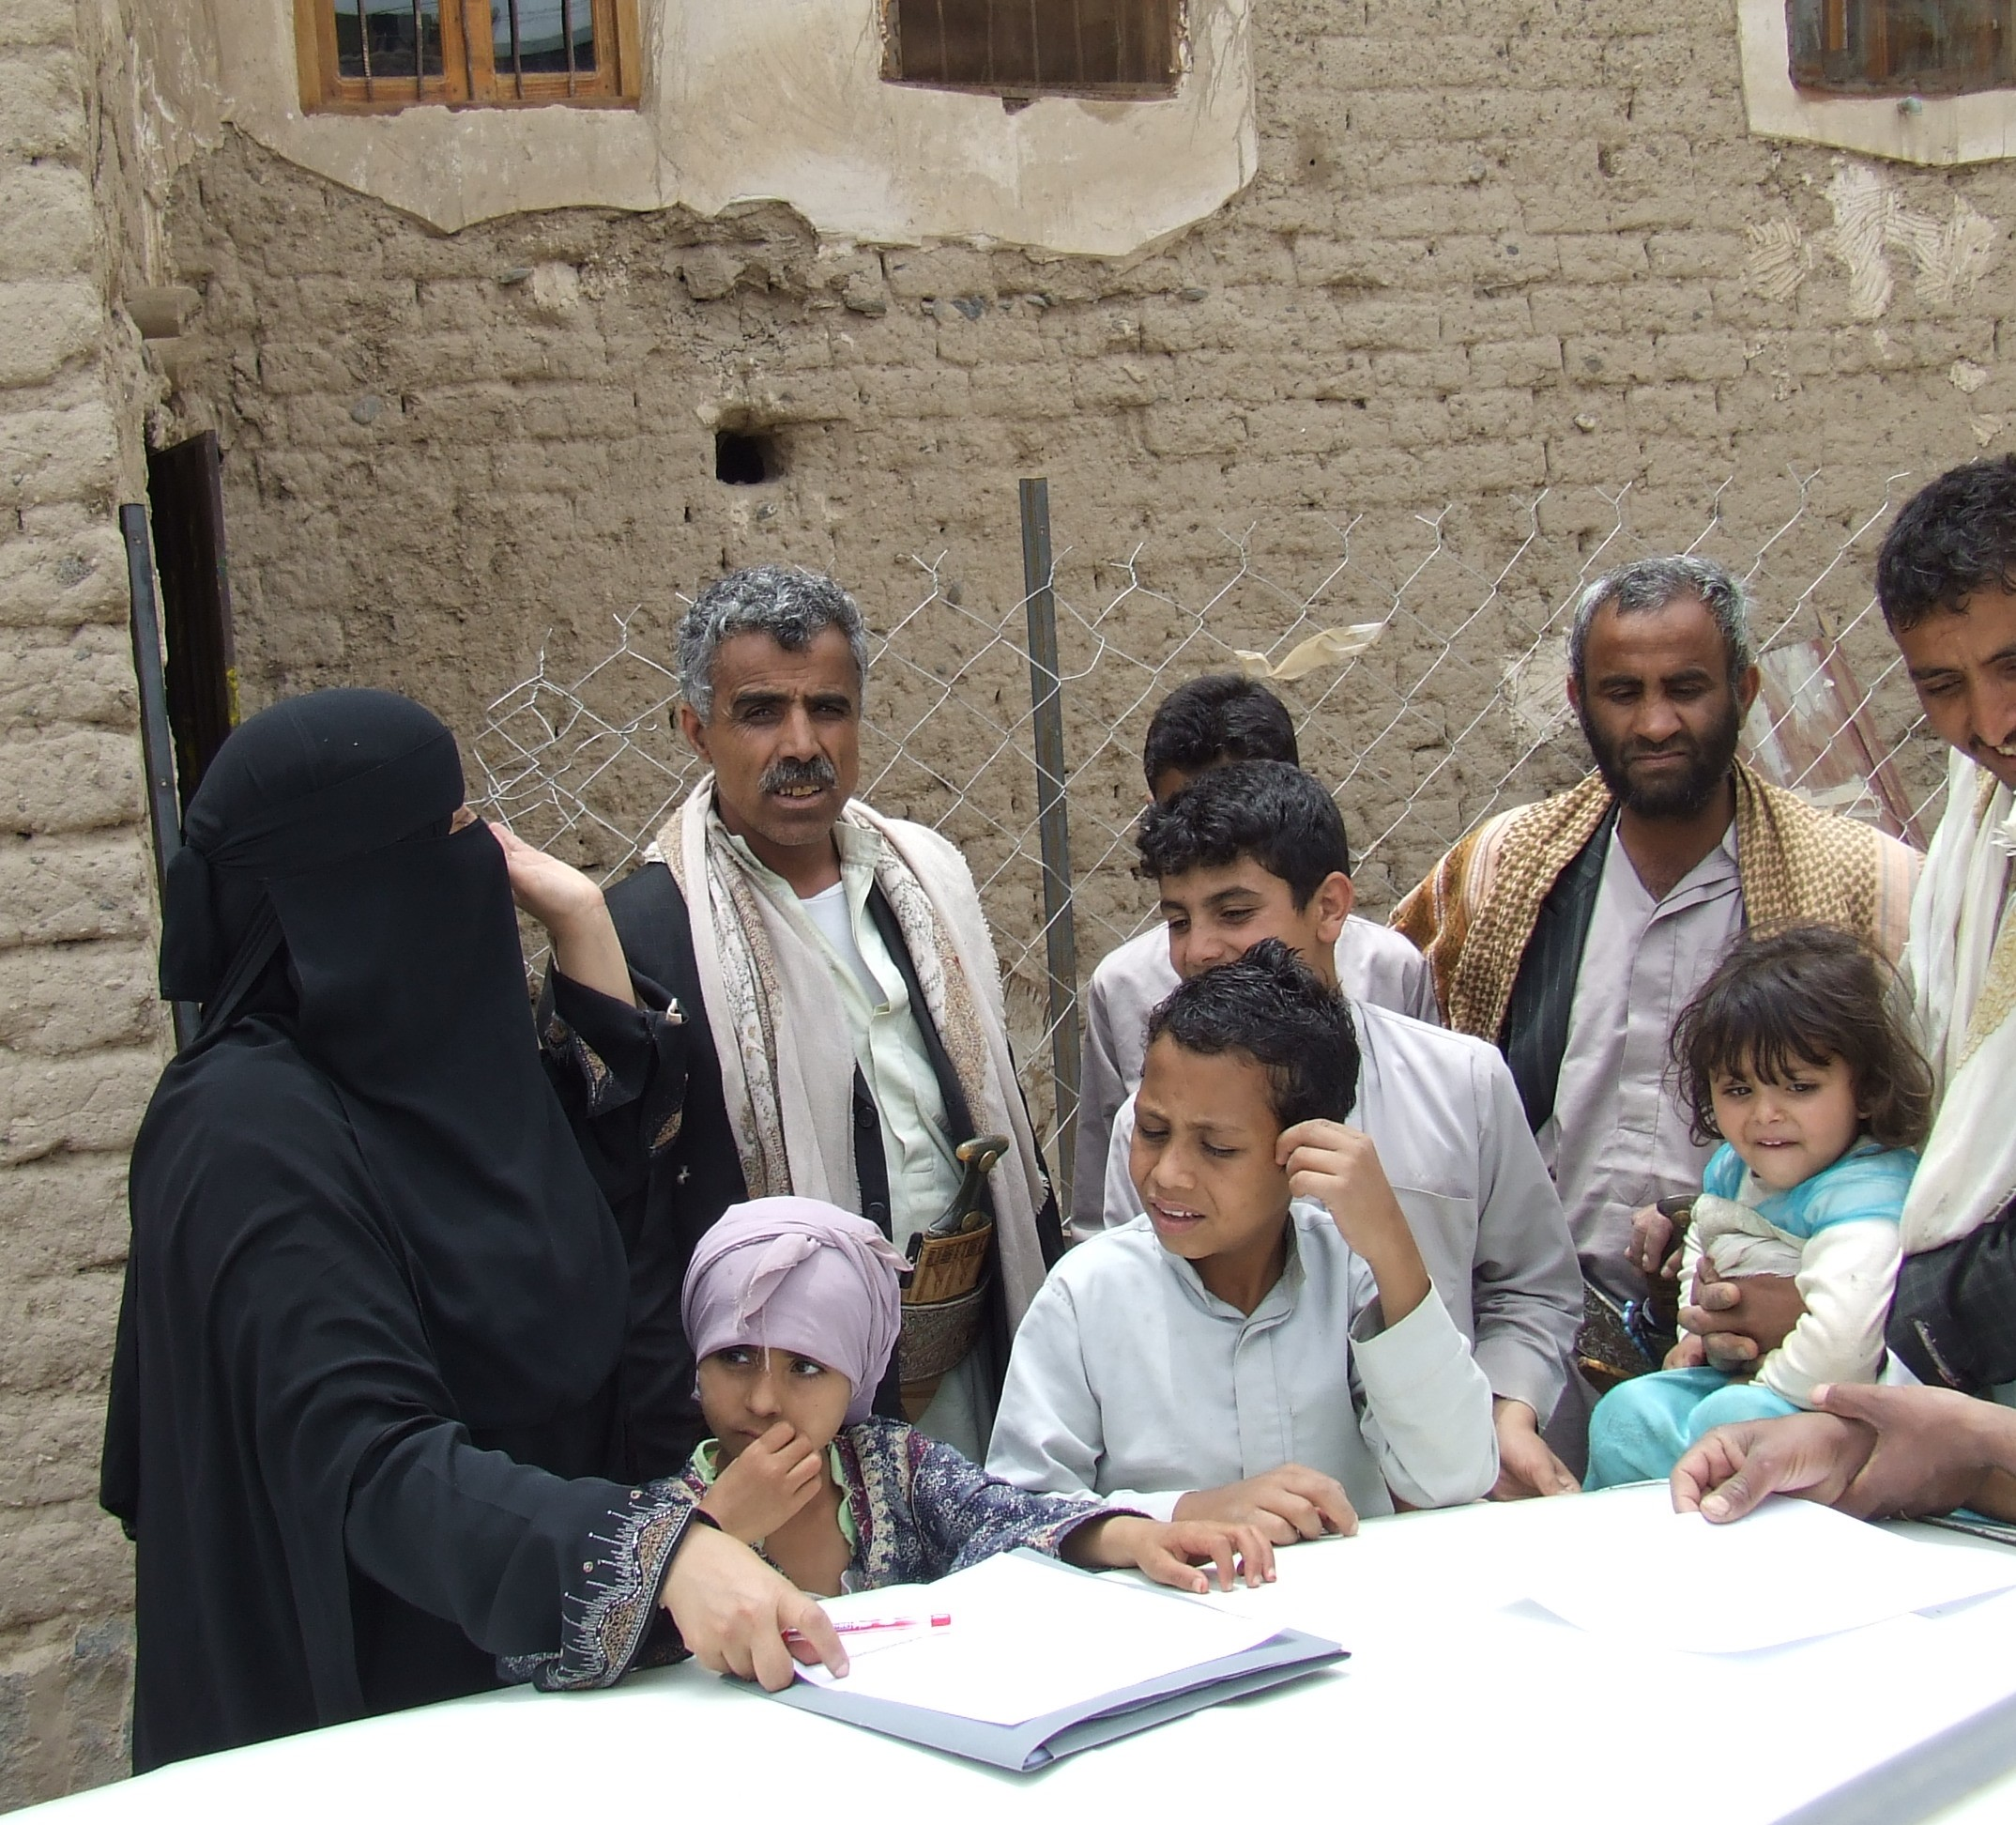 yemeni woman writing + kids.jpg